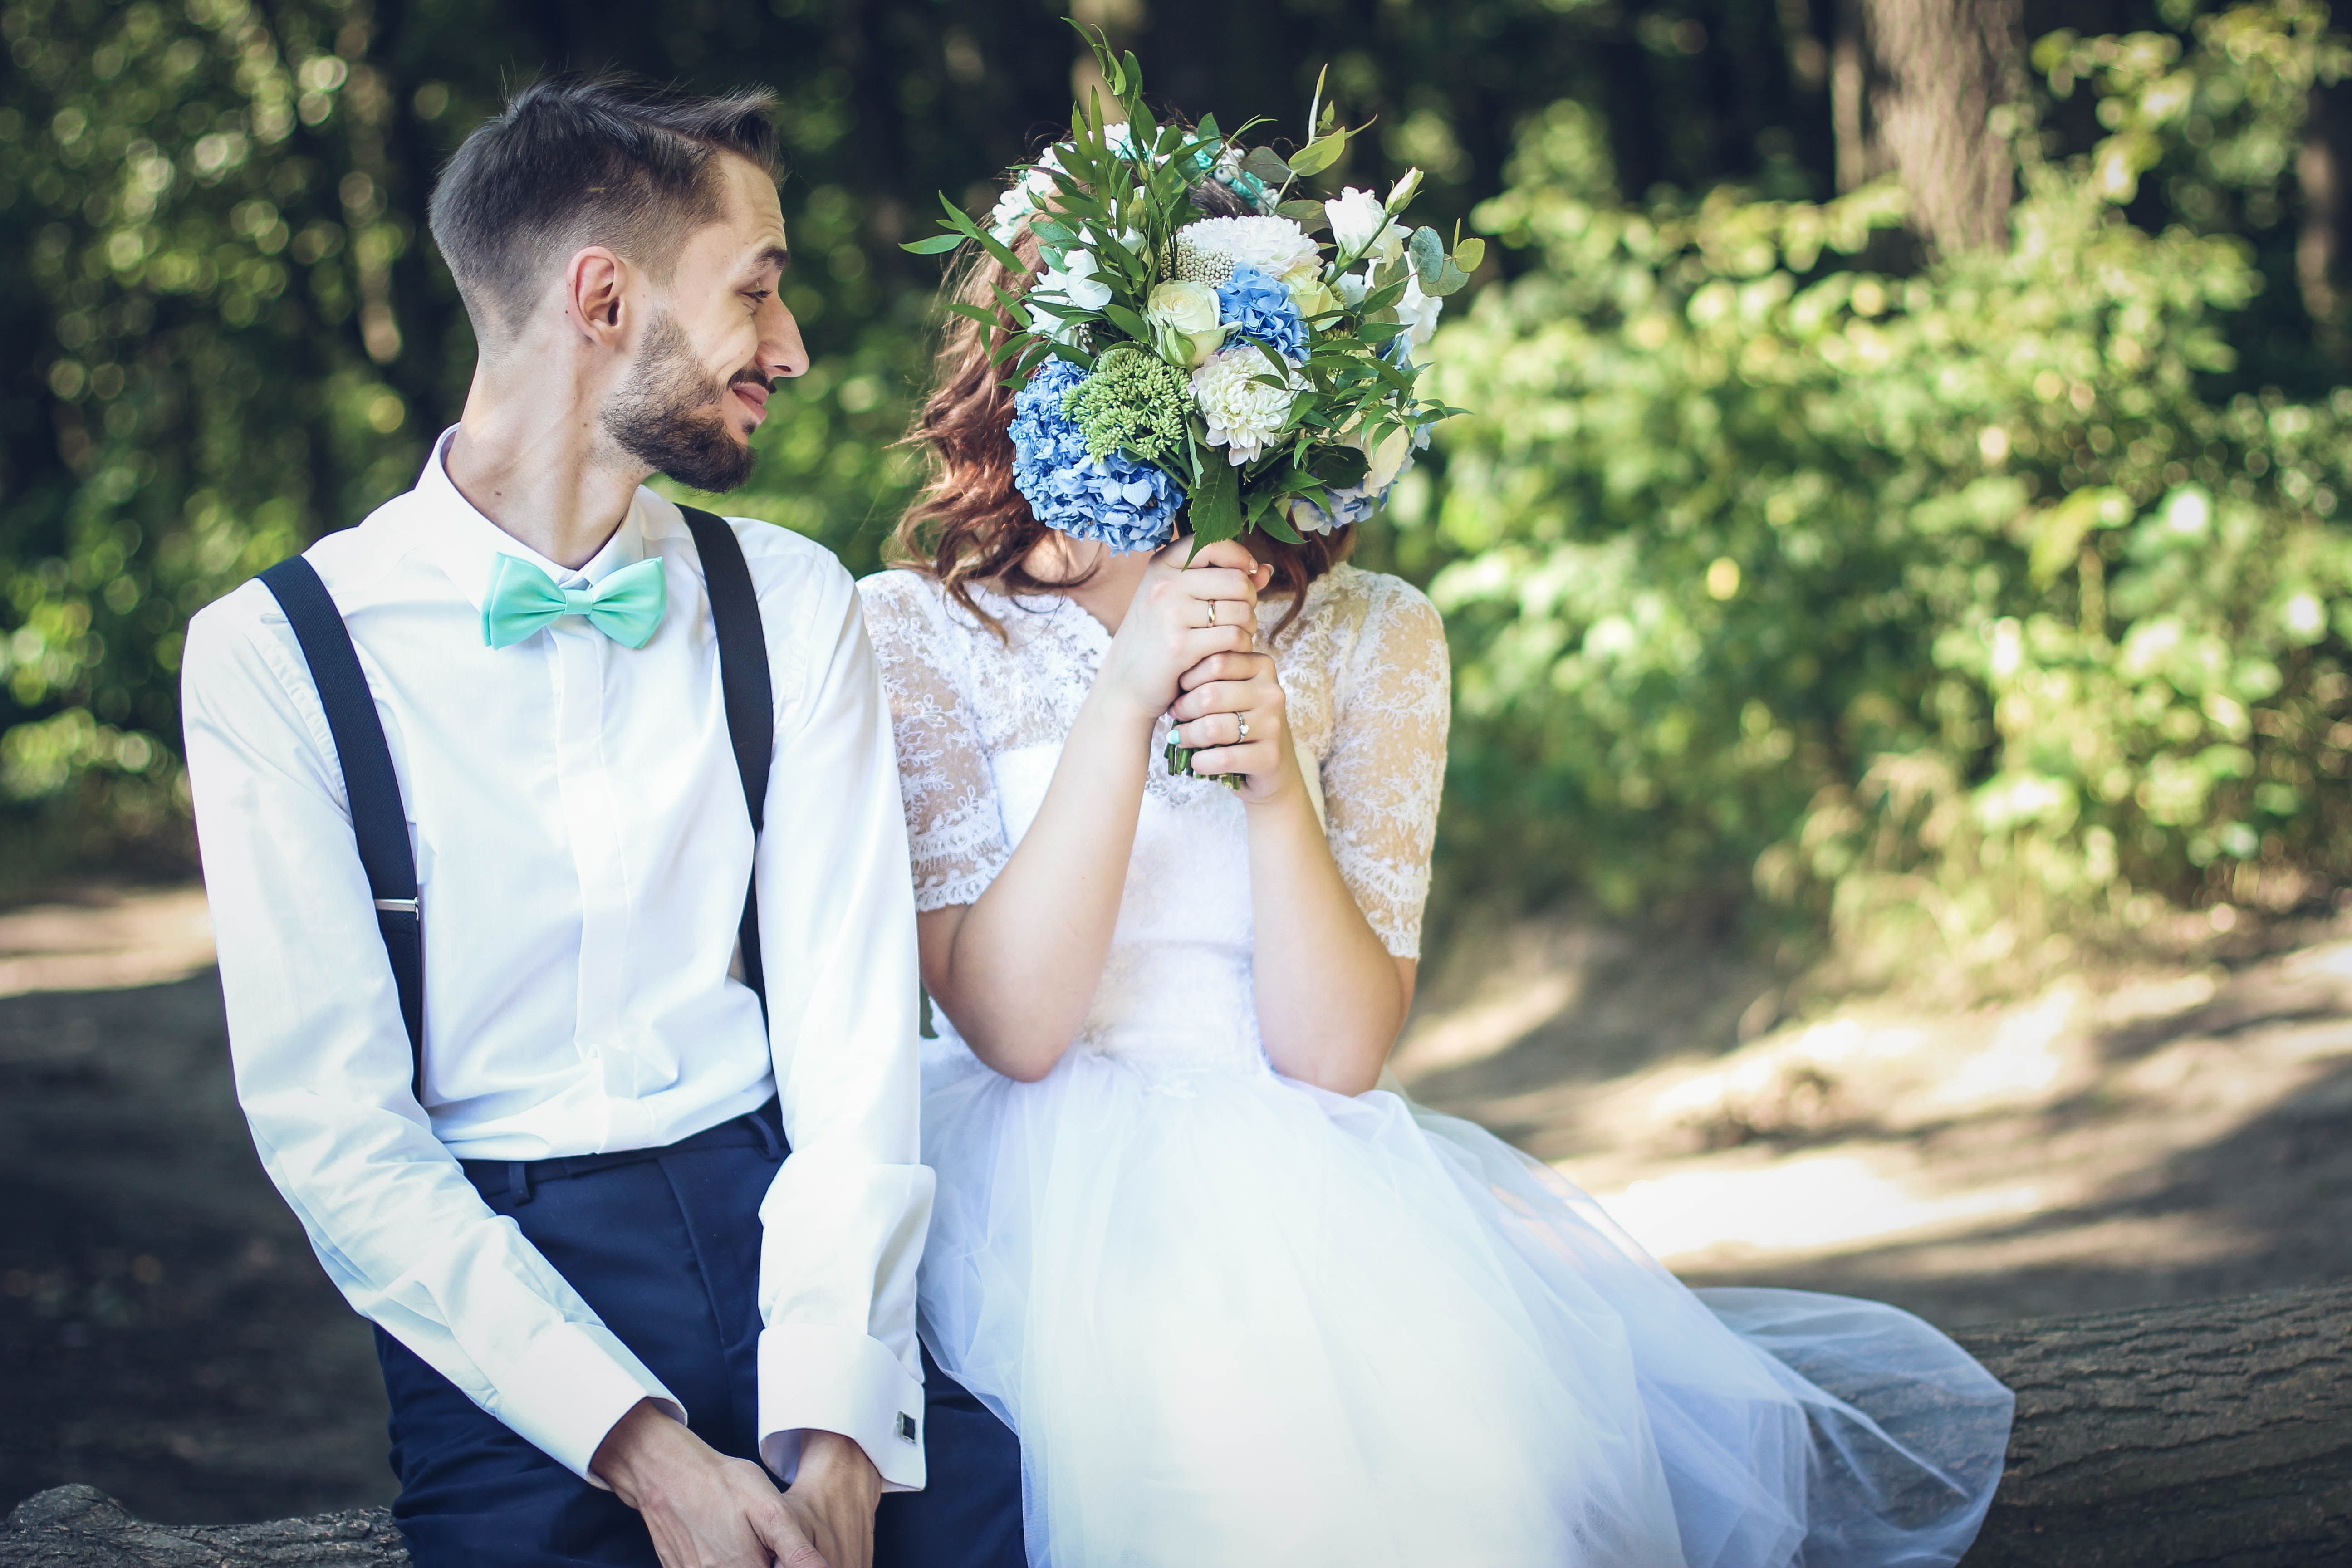 Your Wedding Day Photos: Perfected!